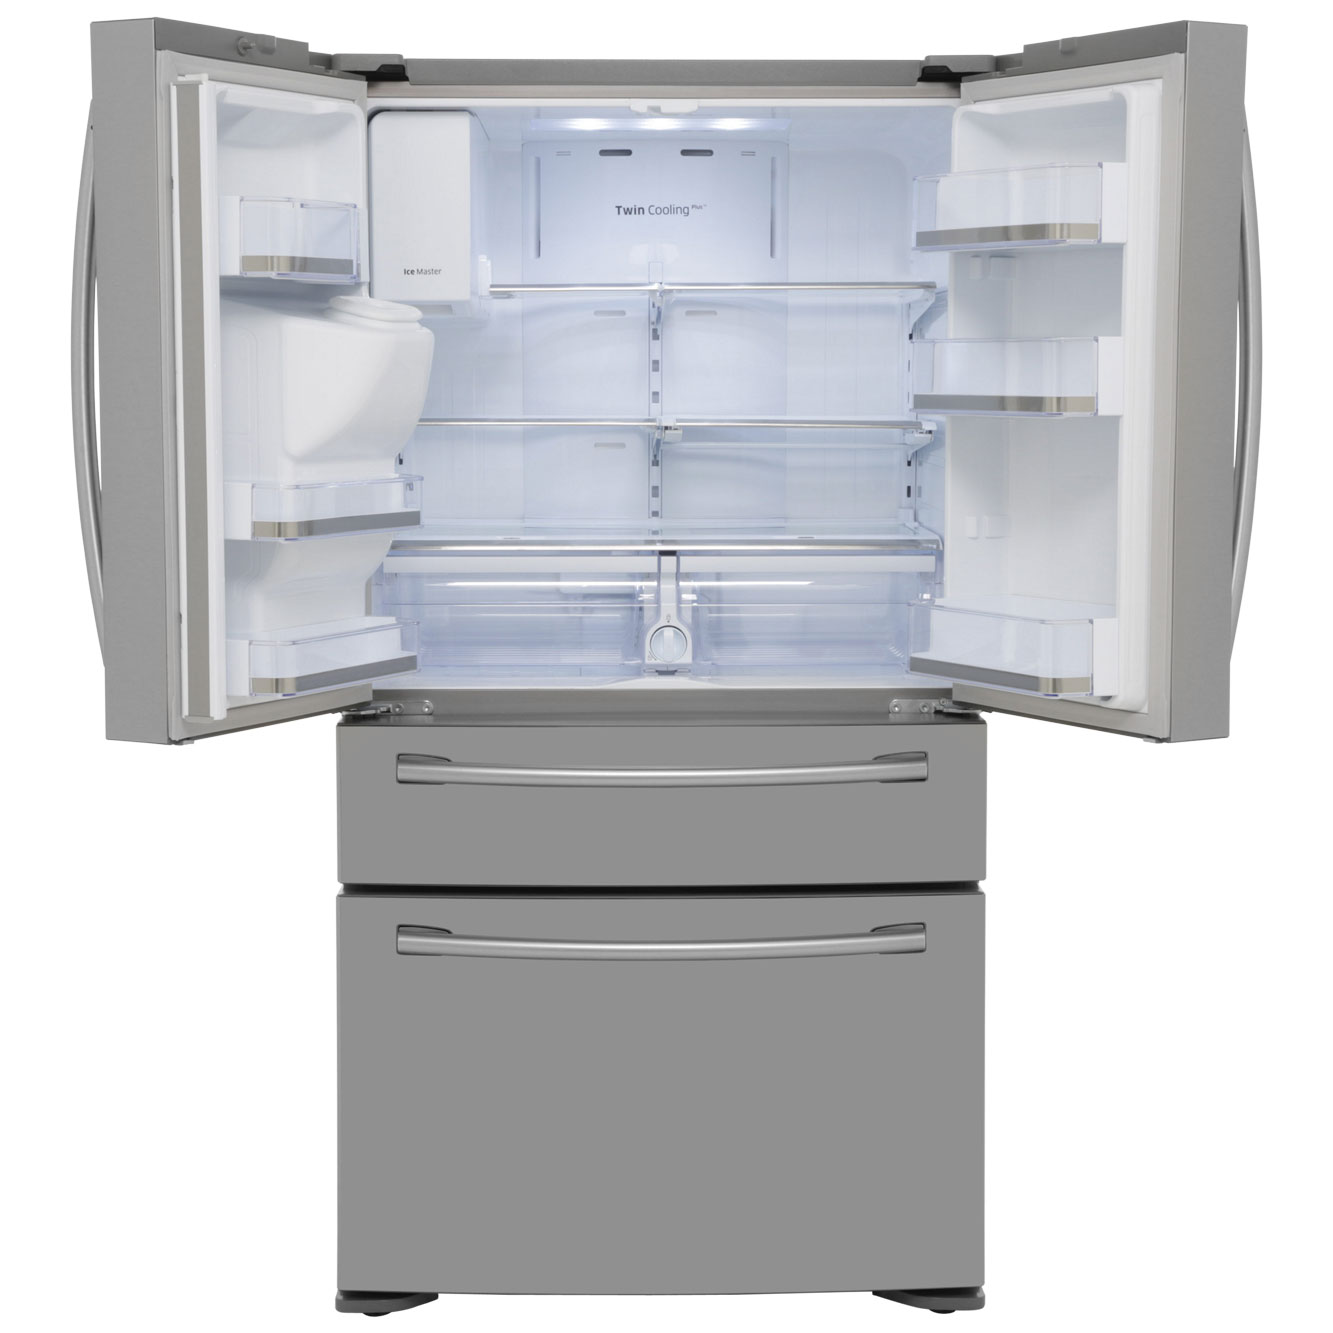 American Fridge Freezer With Drawers Part - 19: Samsung American Fridge Freezer | RF24FSEDBSR | Ao.com